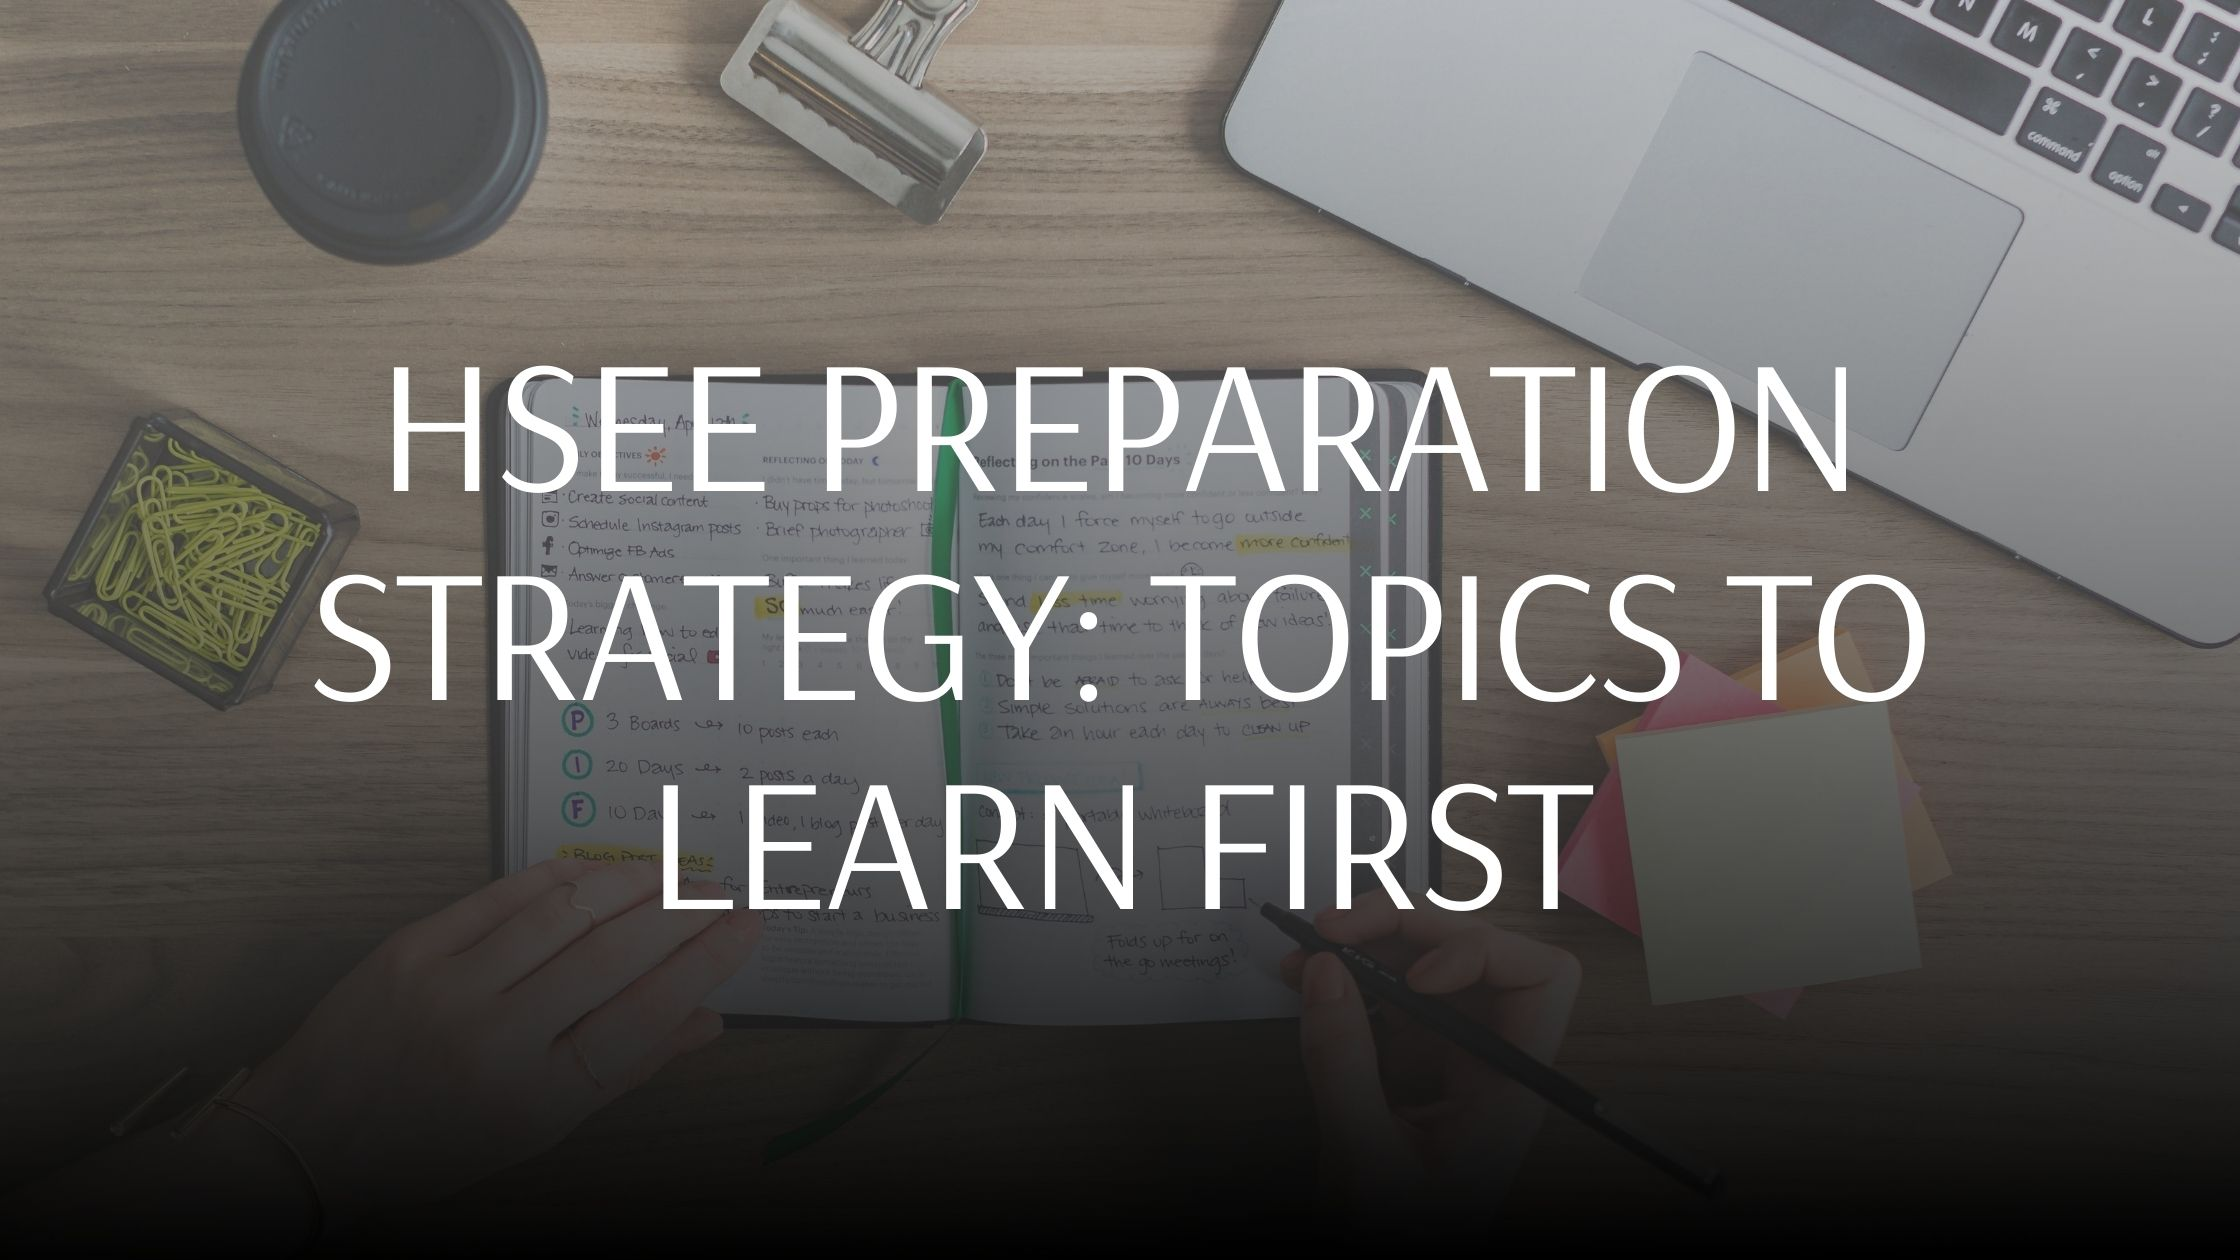 Best HSEE Preparation Strategy: 5 Topics To Learn First